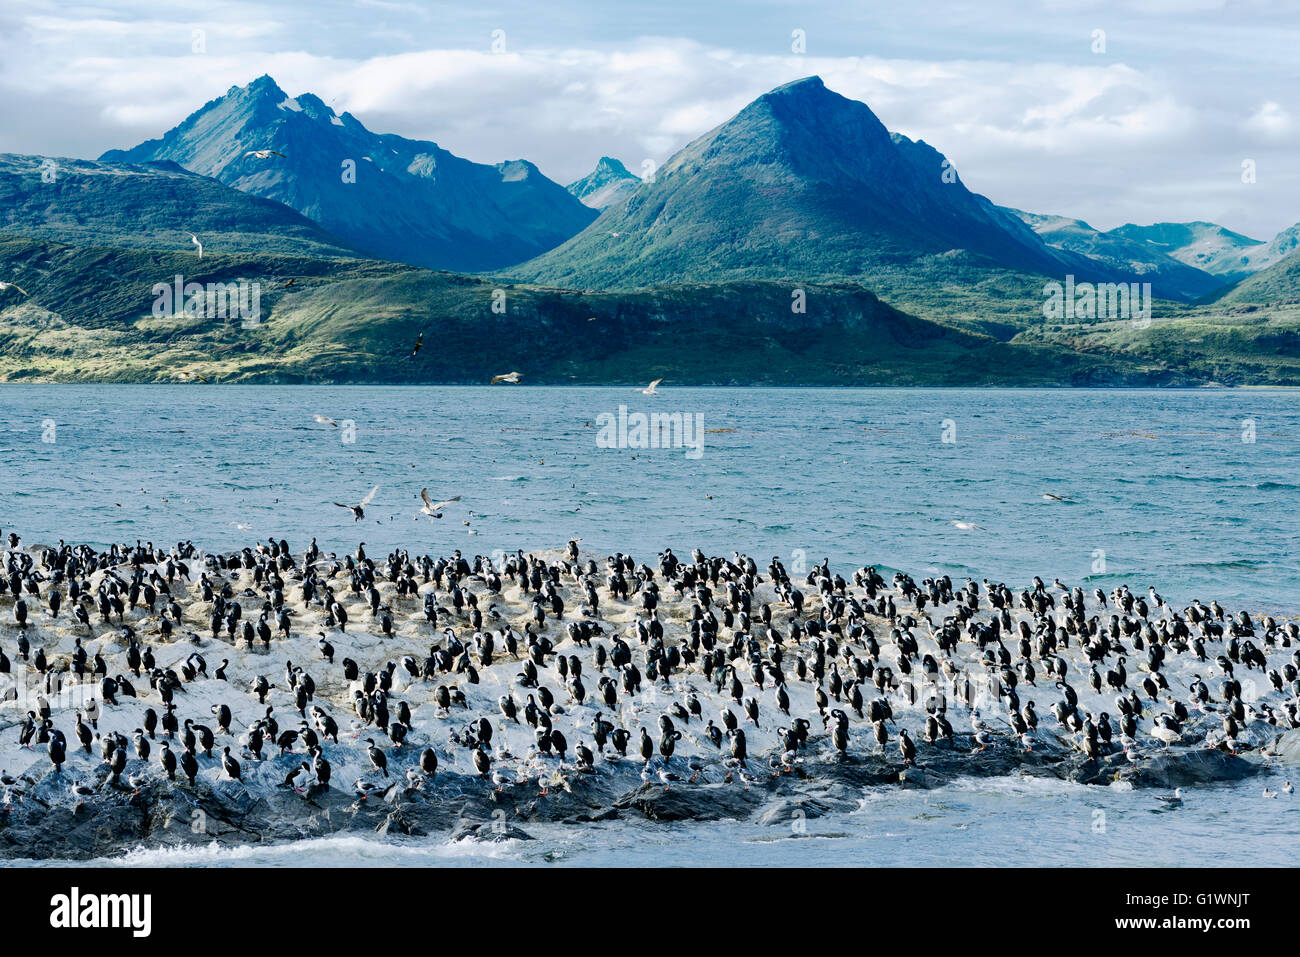 Colony of King Cormorants On Ilha Dos Passaros Located on the Beagle Channel, Tierra Del Fuego, Argentina - Stock Image